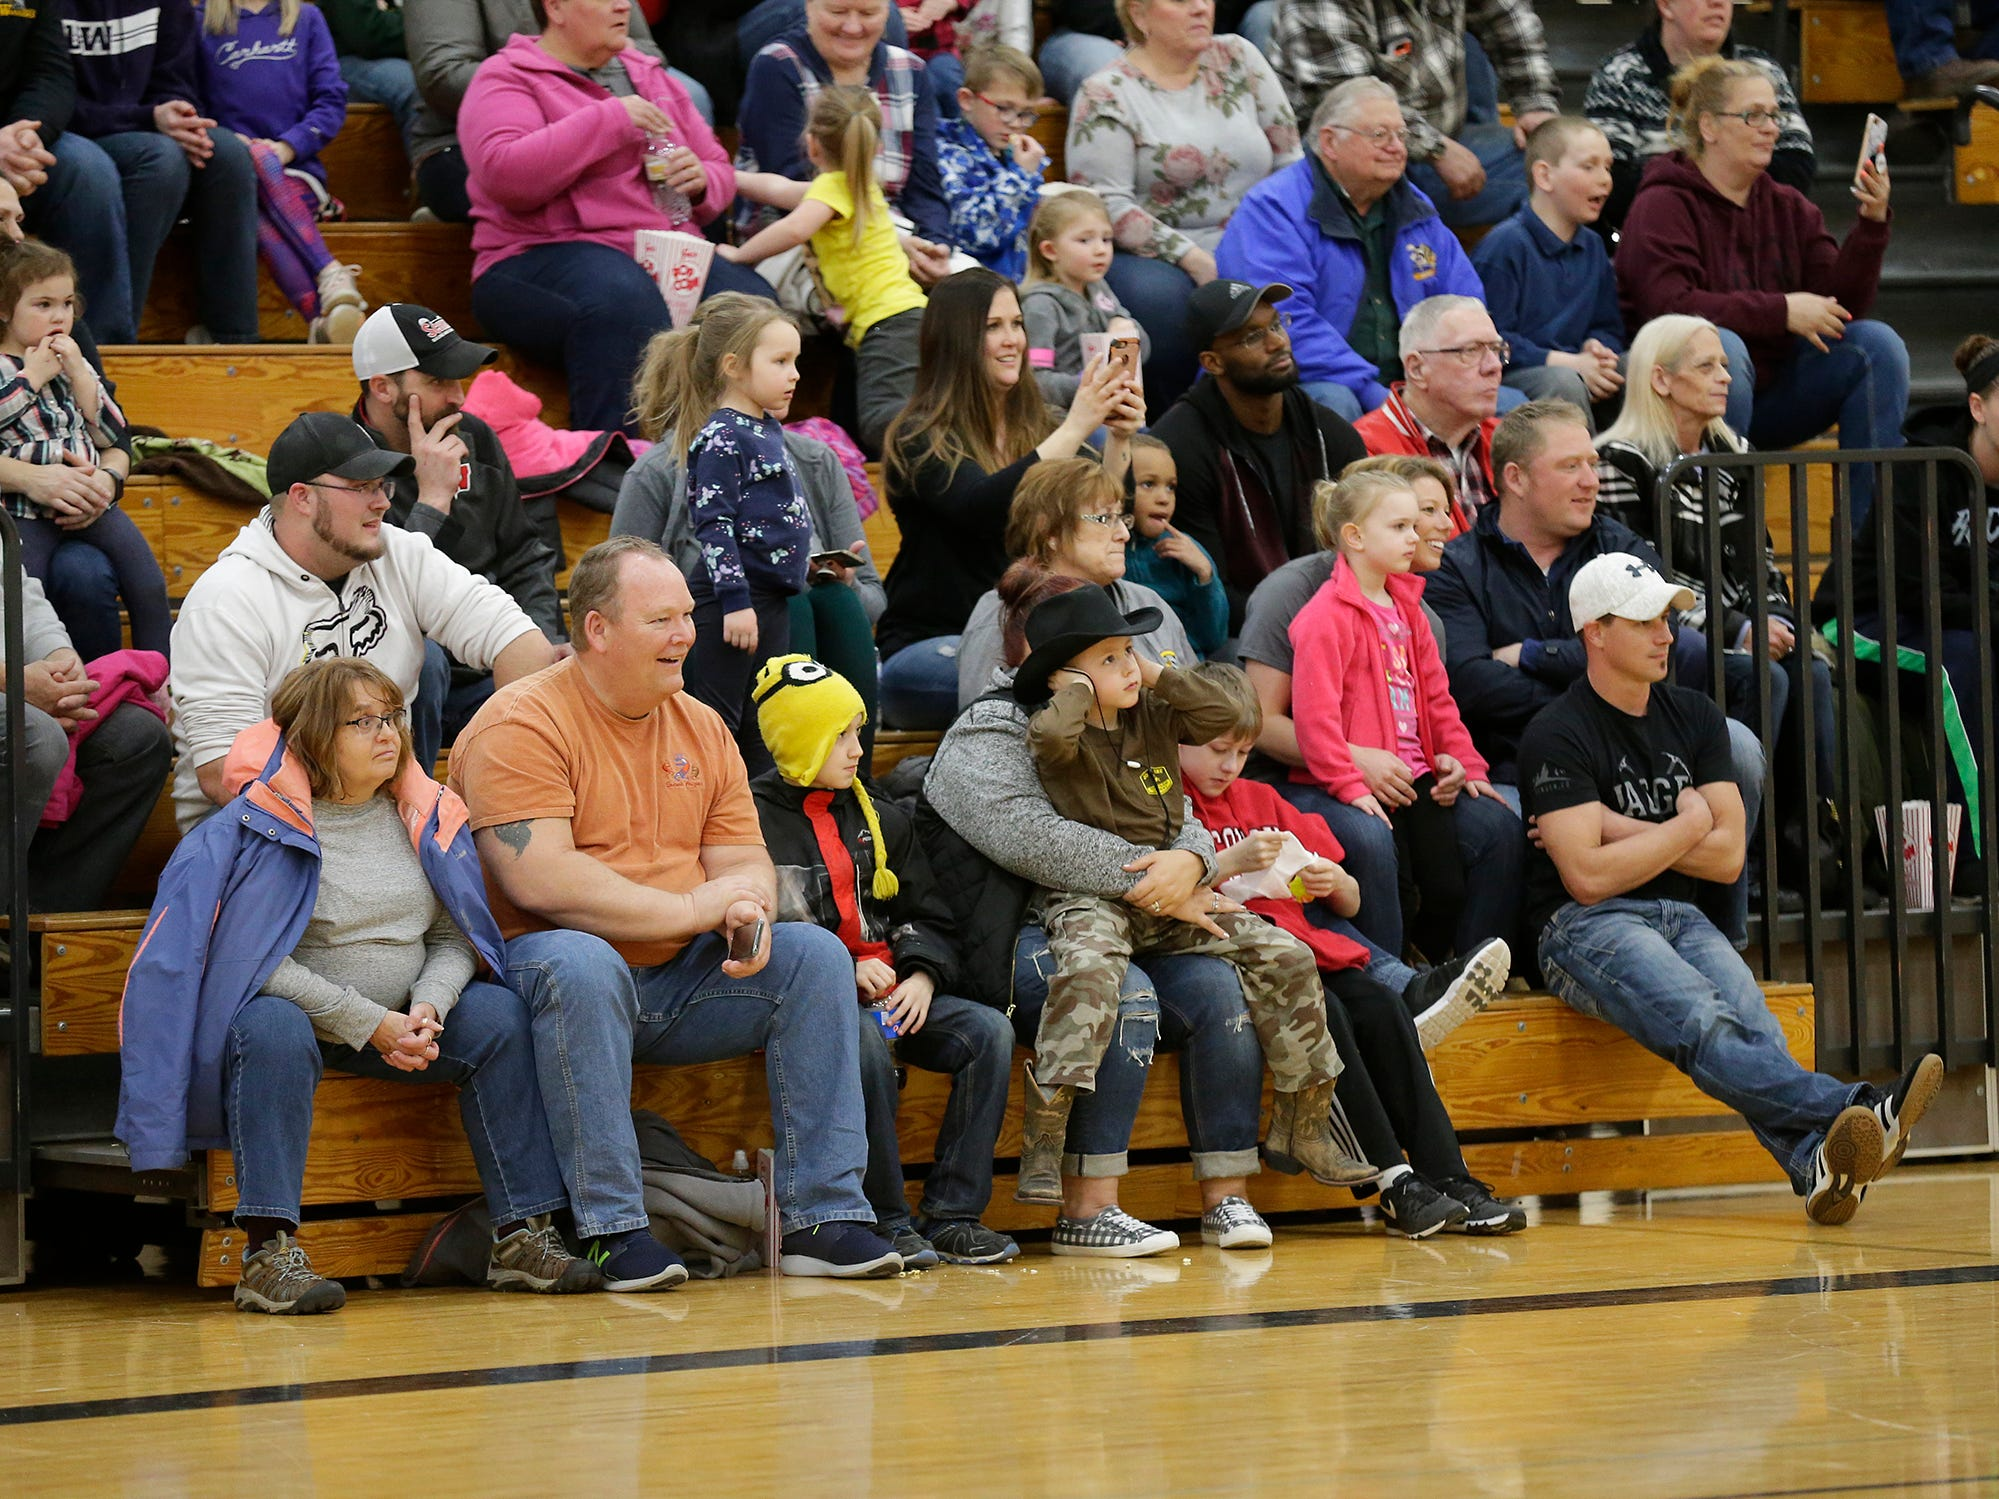 Waupun FFA hosted a night of Donkey Basketball Tuesday, March 19, 2019 in the Waupun High School gym to raise money for Access for Recess. A group wanting to bring all abilities playground equipment to the community. The event, which pegged FFA members against Waupun High School staff,  raised $3000 for the cause. Doug Raflik/USA TODAY NETWORK-Wisconsin